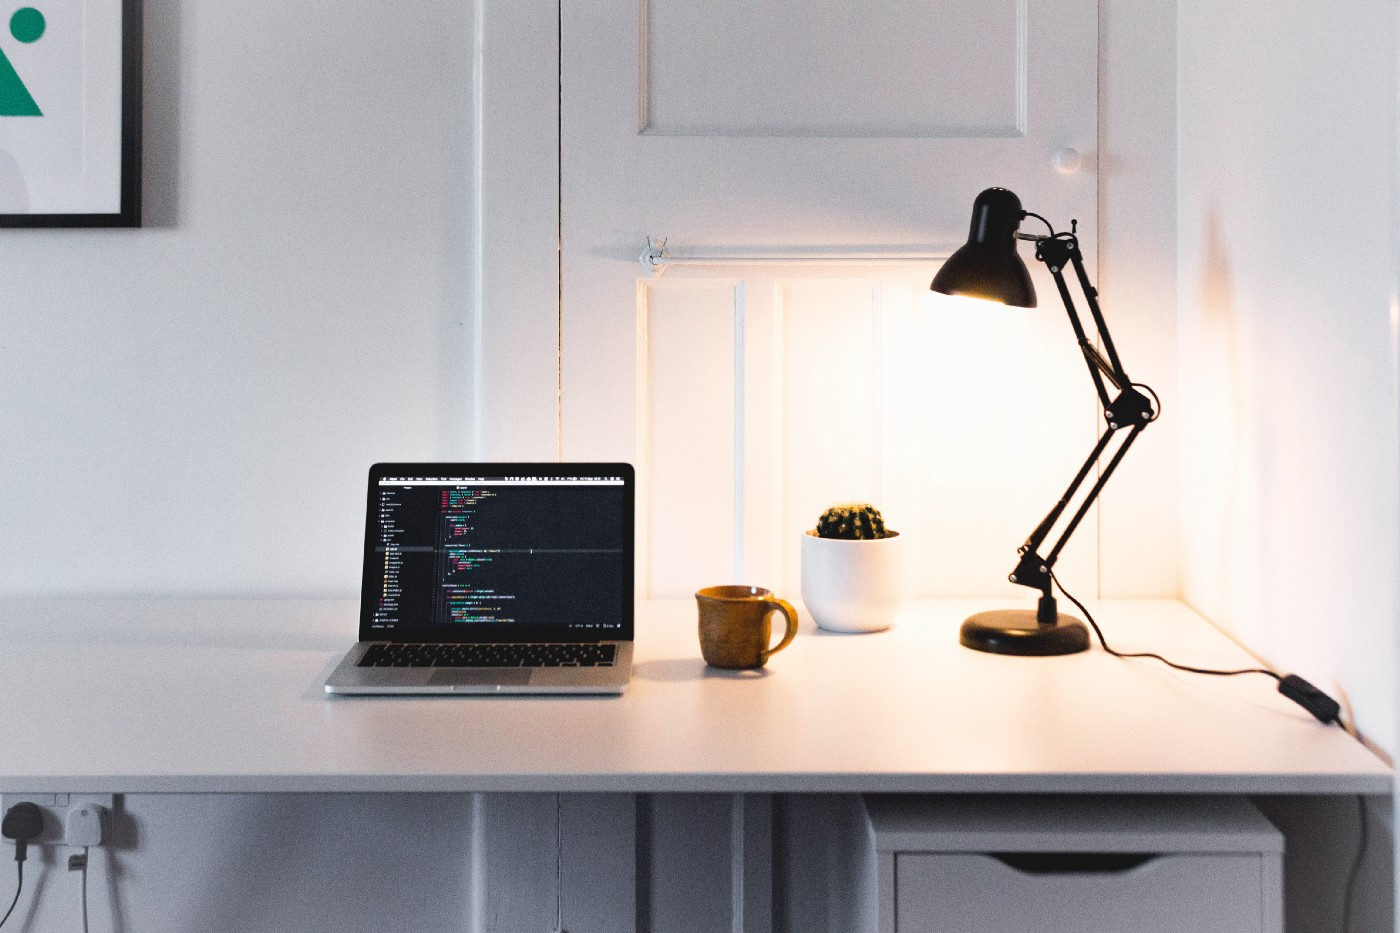 Laptop on top of a white desk, with code on the screen, next to an orange mug, a cactus and a black lamp